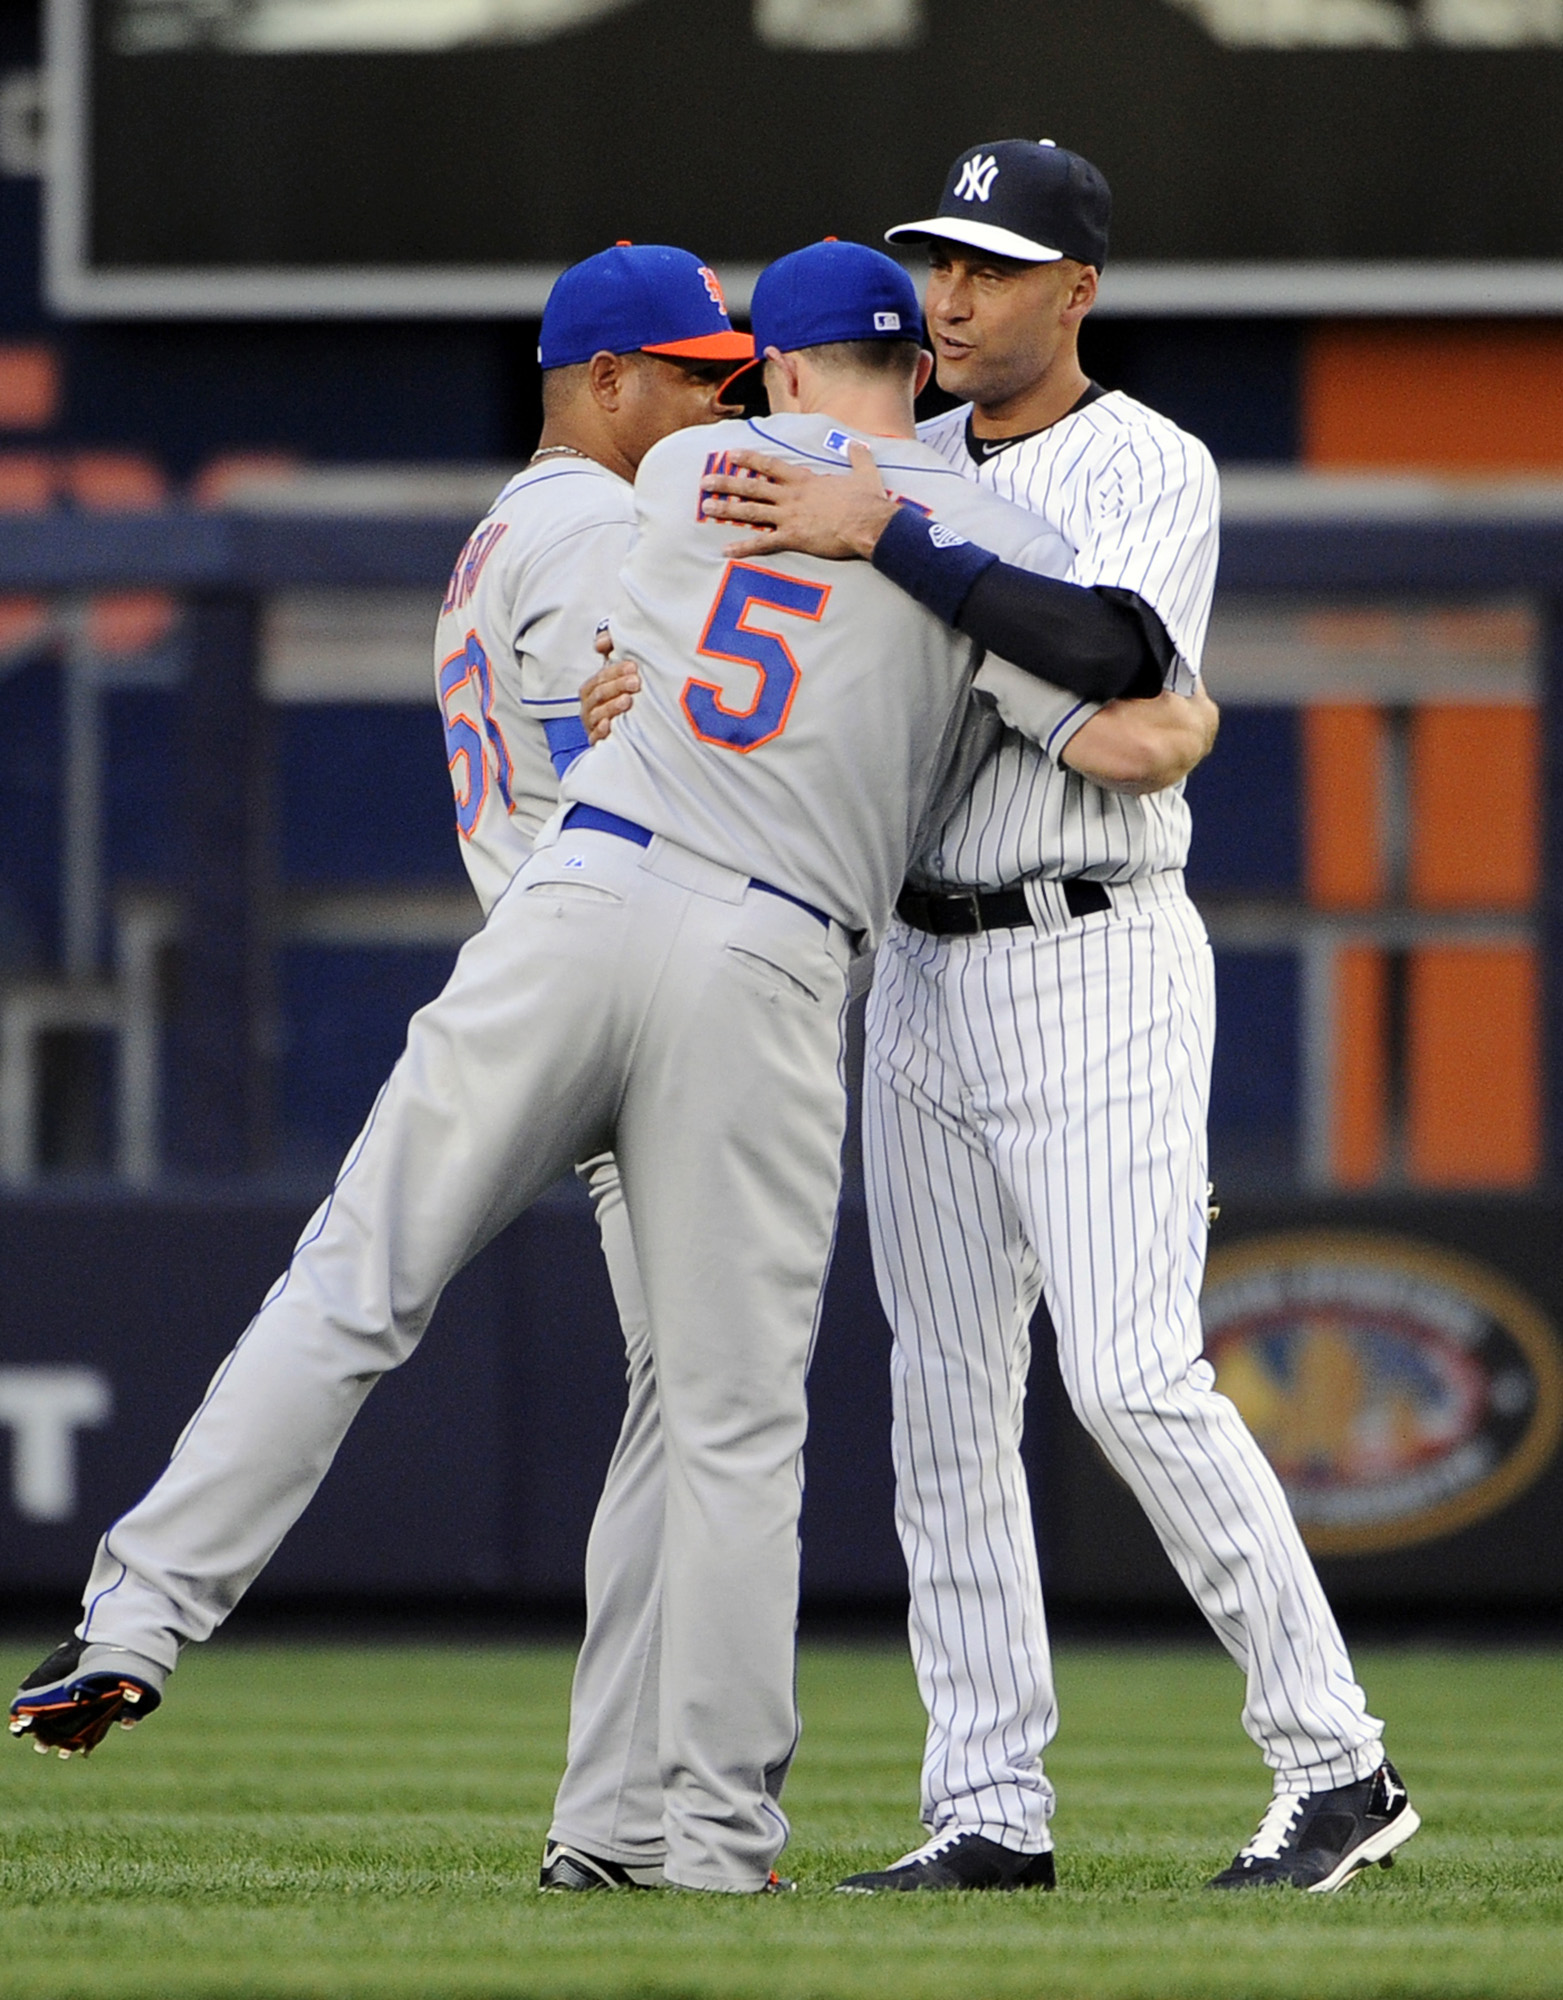 New York Mets' David Wright (5) hugs New York Yankees' Derek Jeter next to Bobby Abreu in the outfield before an interleague baseball game against the New York Yankees at Yankee Stadium on Monday, May 12, 2014, in New York